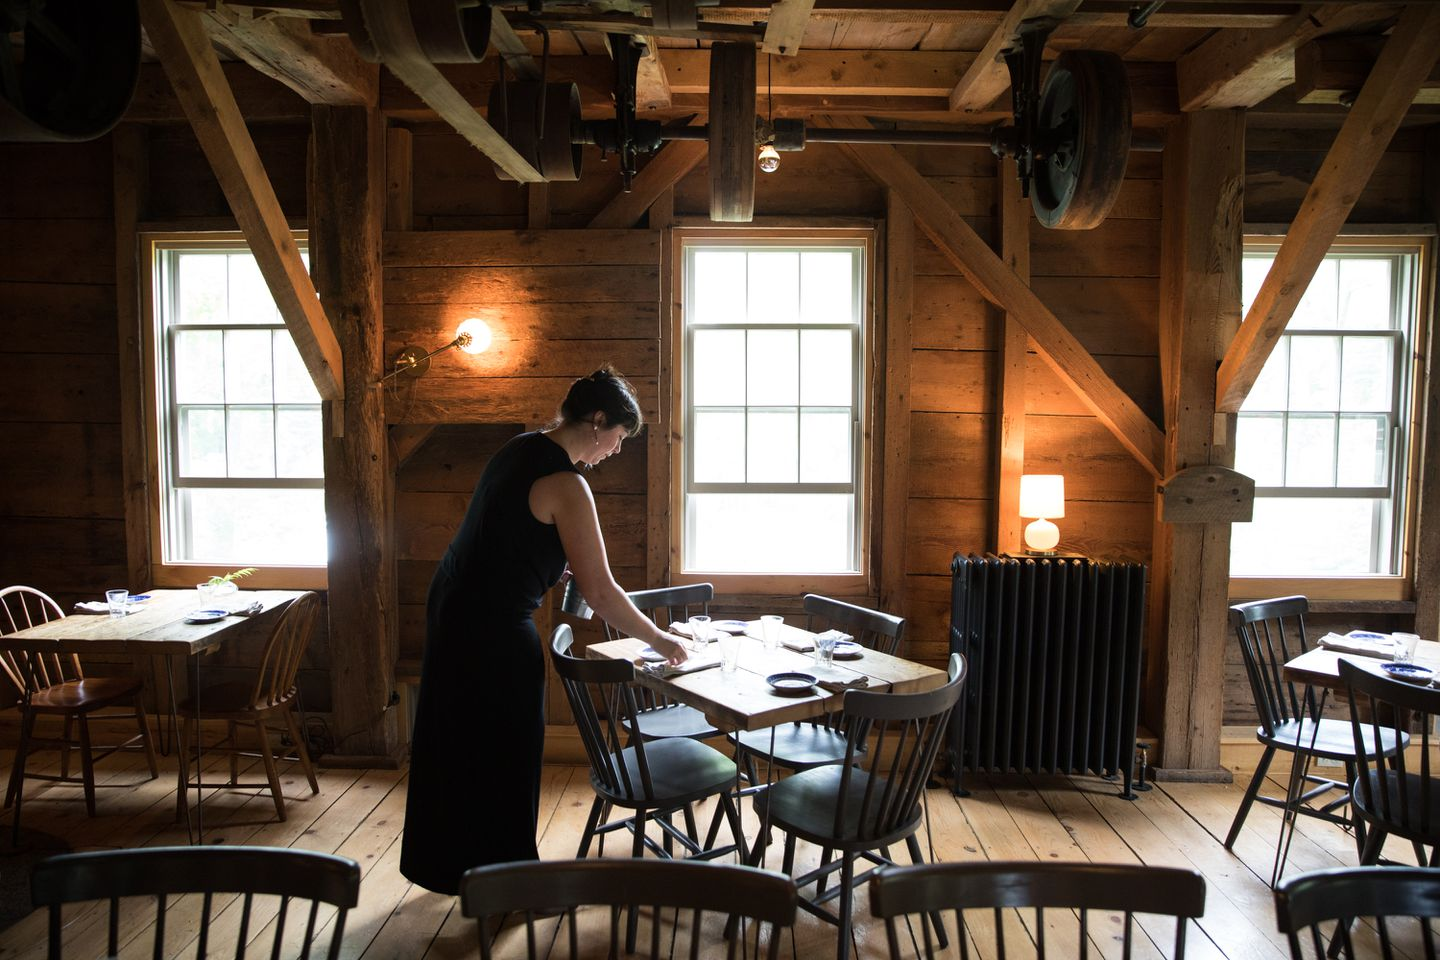 Lauren Crichton, a server at the Lost Kitchen, sets up the dining room for the evening meal.